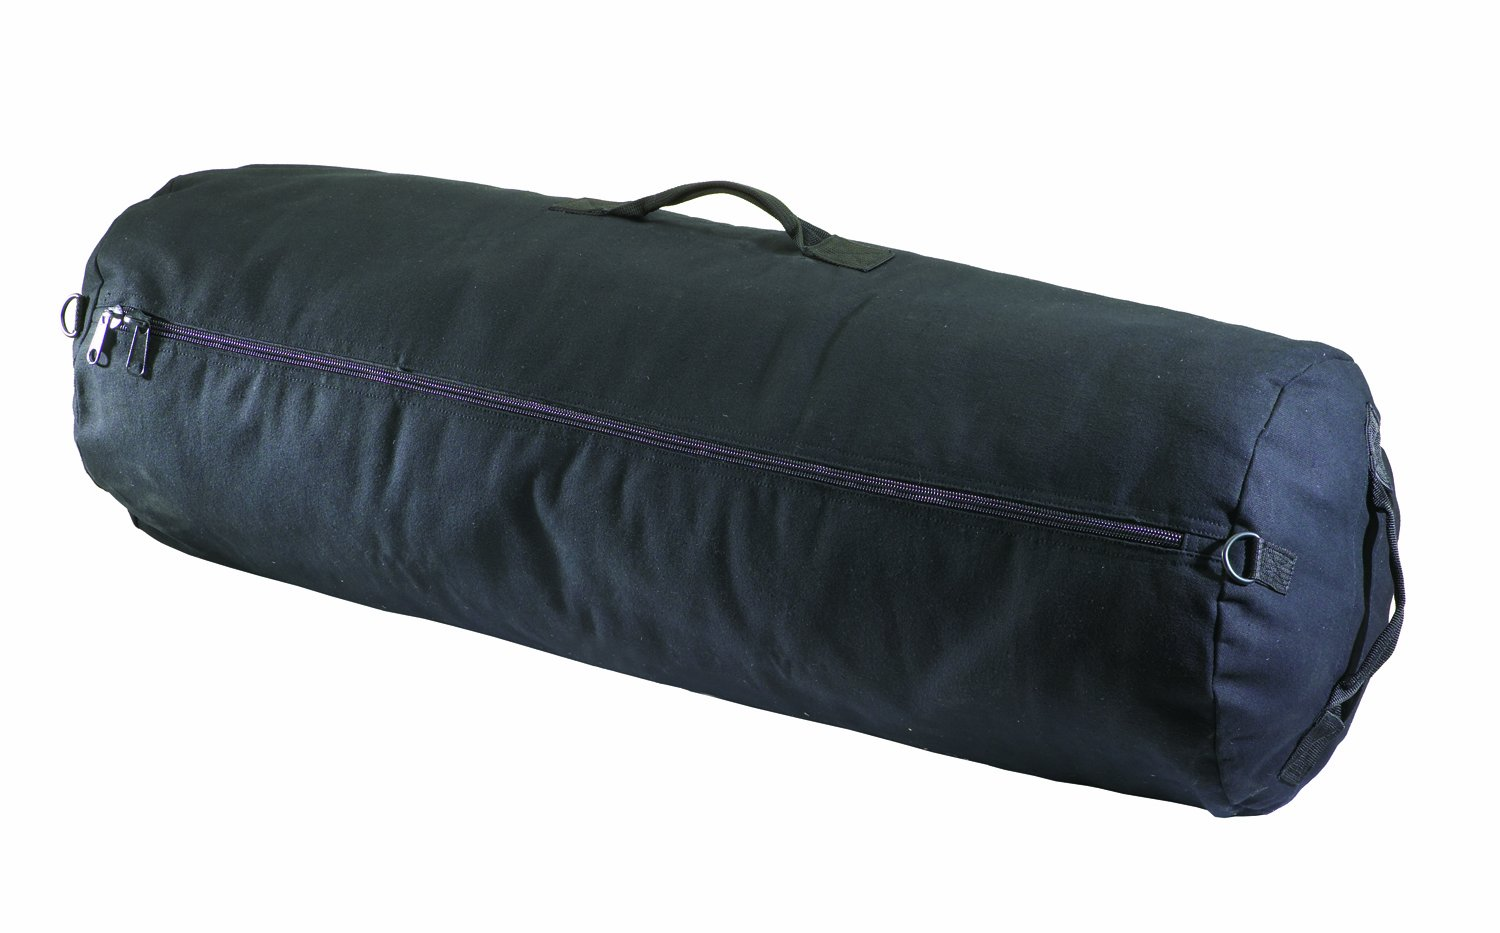 Texsport Zipper Canvas Duffle Roll Travel Sports Equipment Bag